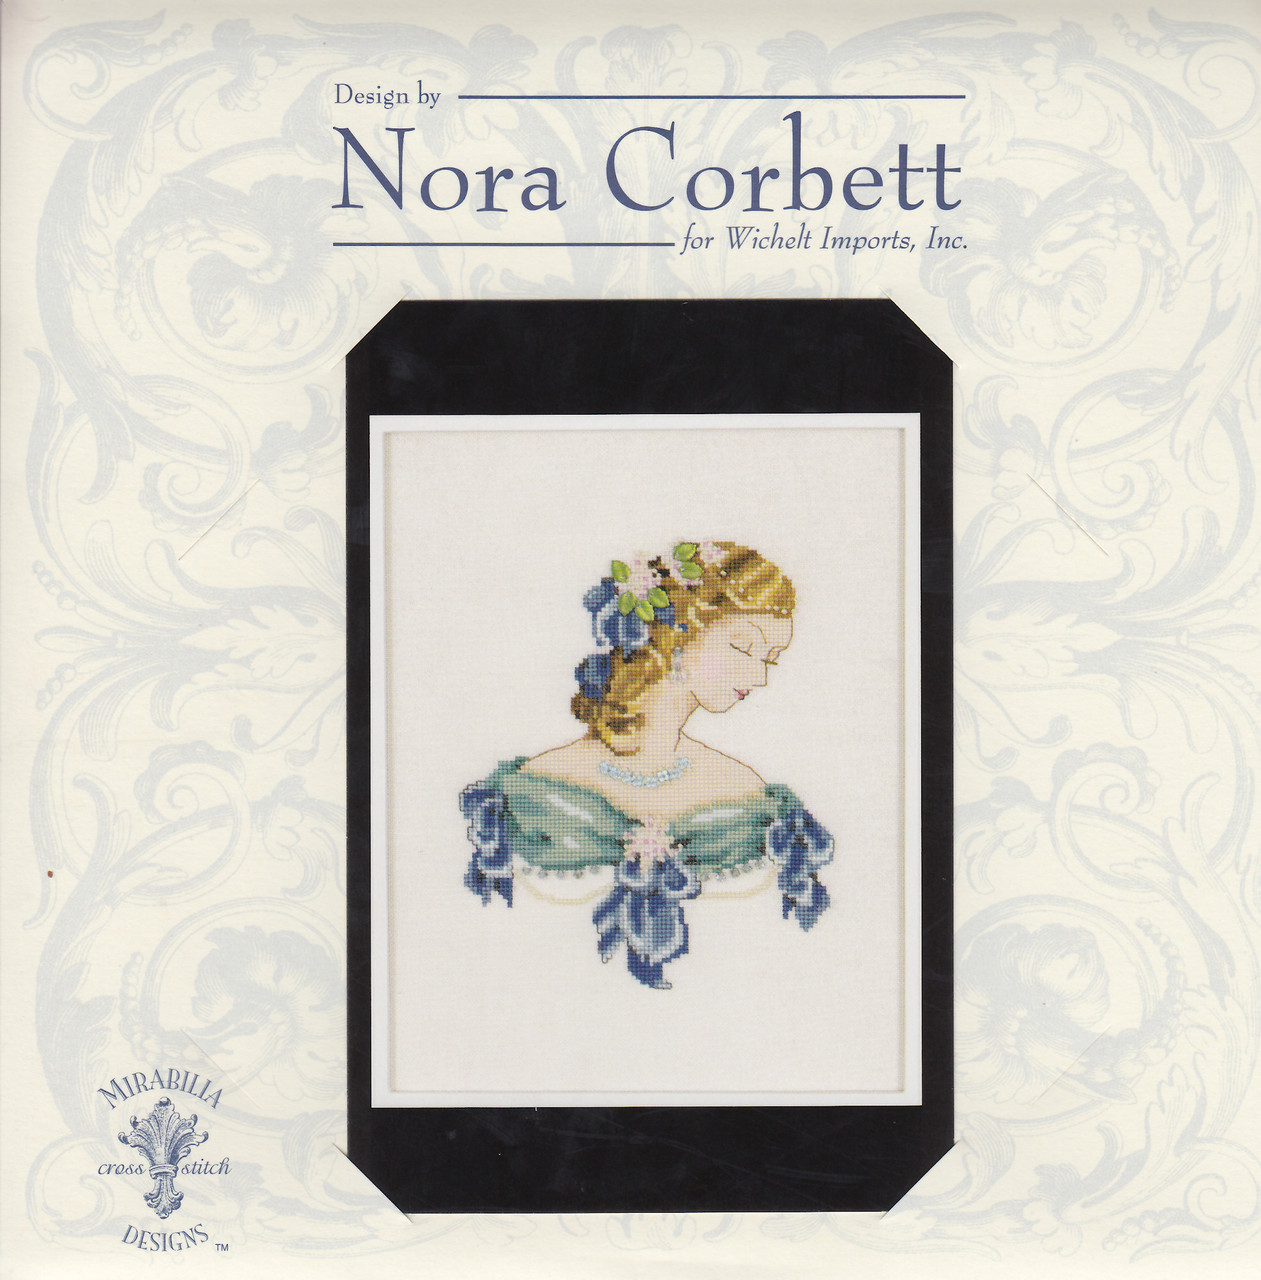 Nora Corbett - Portrait of Lauren in Blue